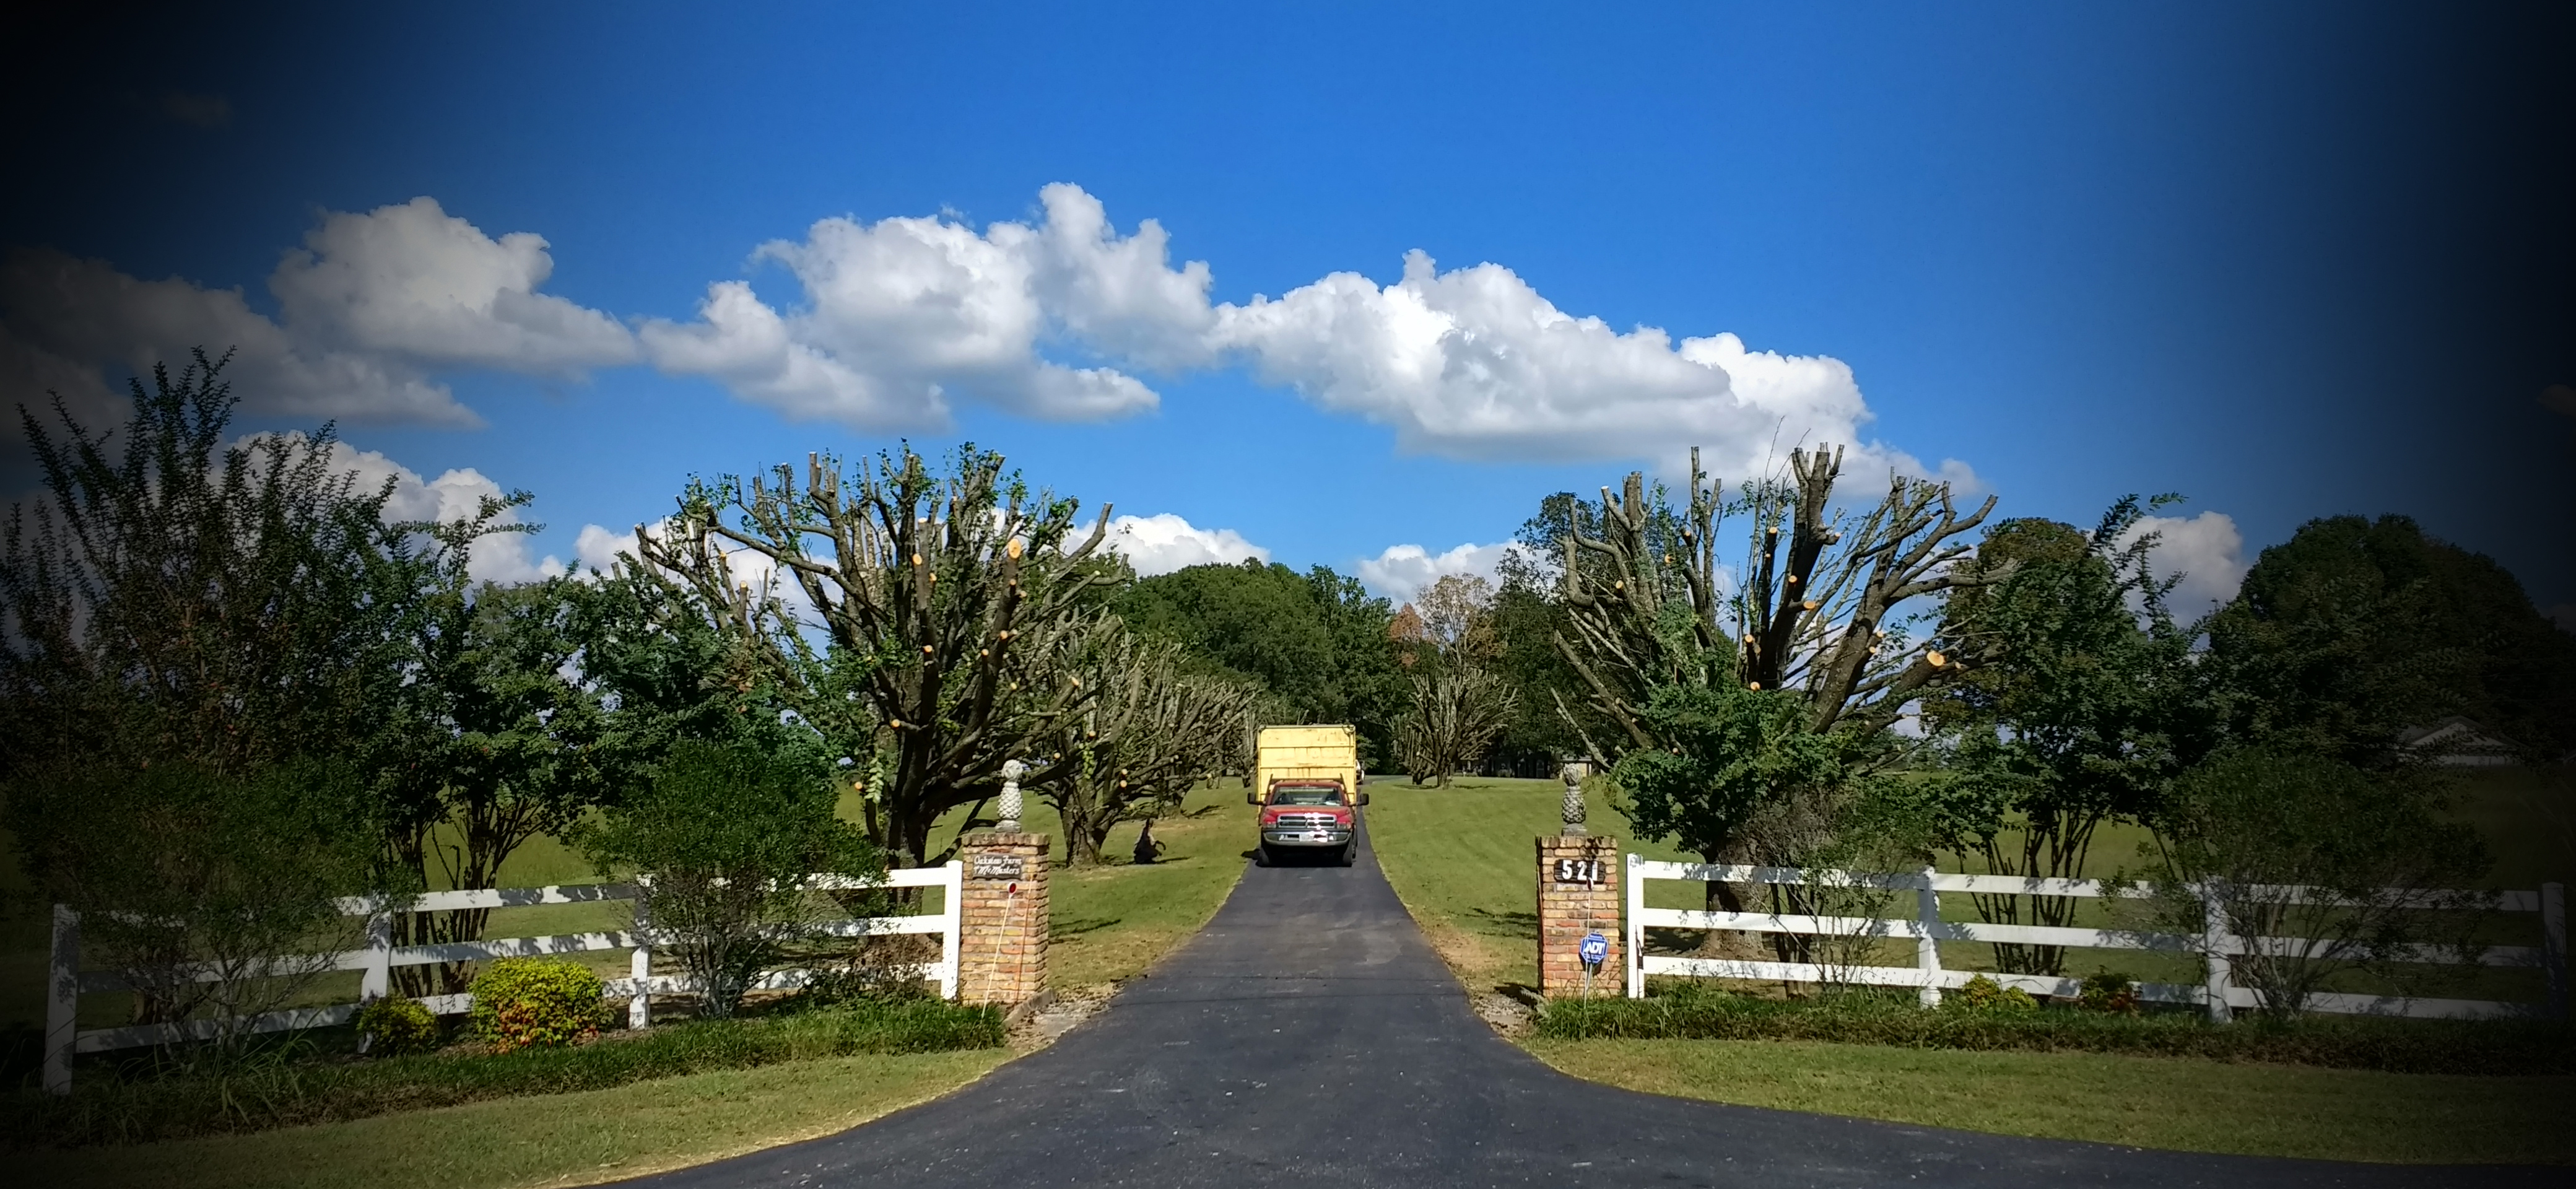 Services by Hollis Professional Tree Service